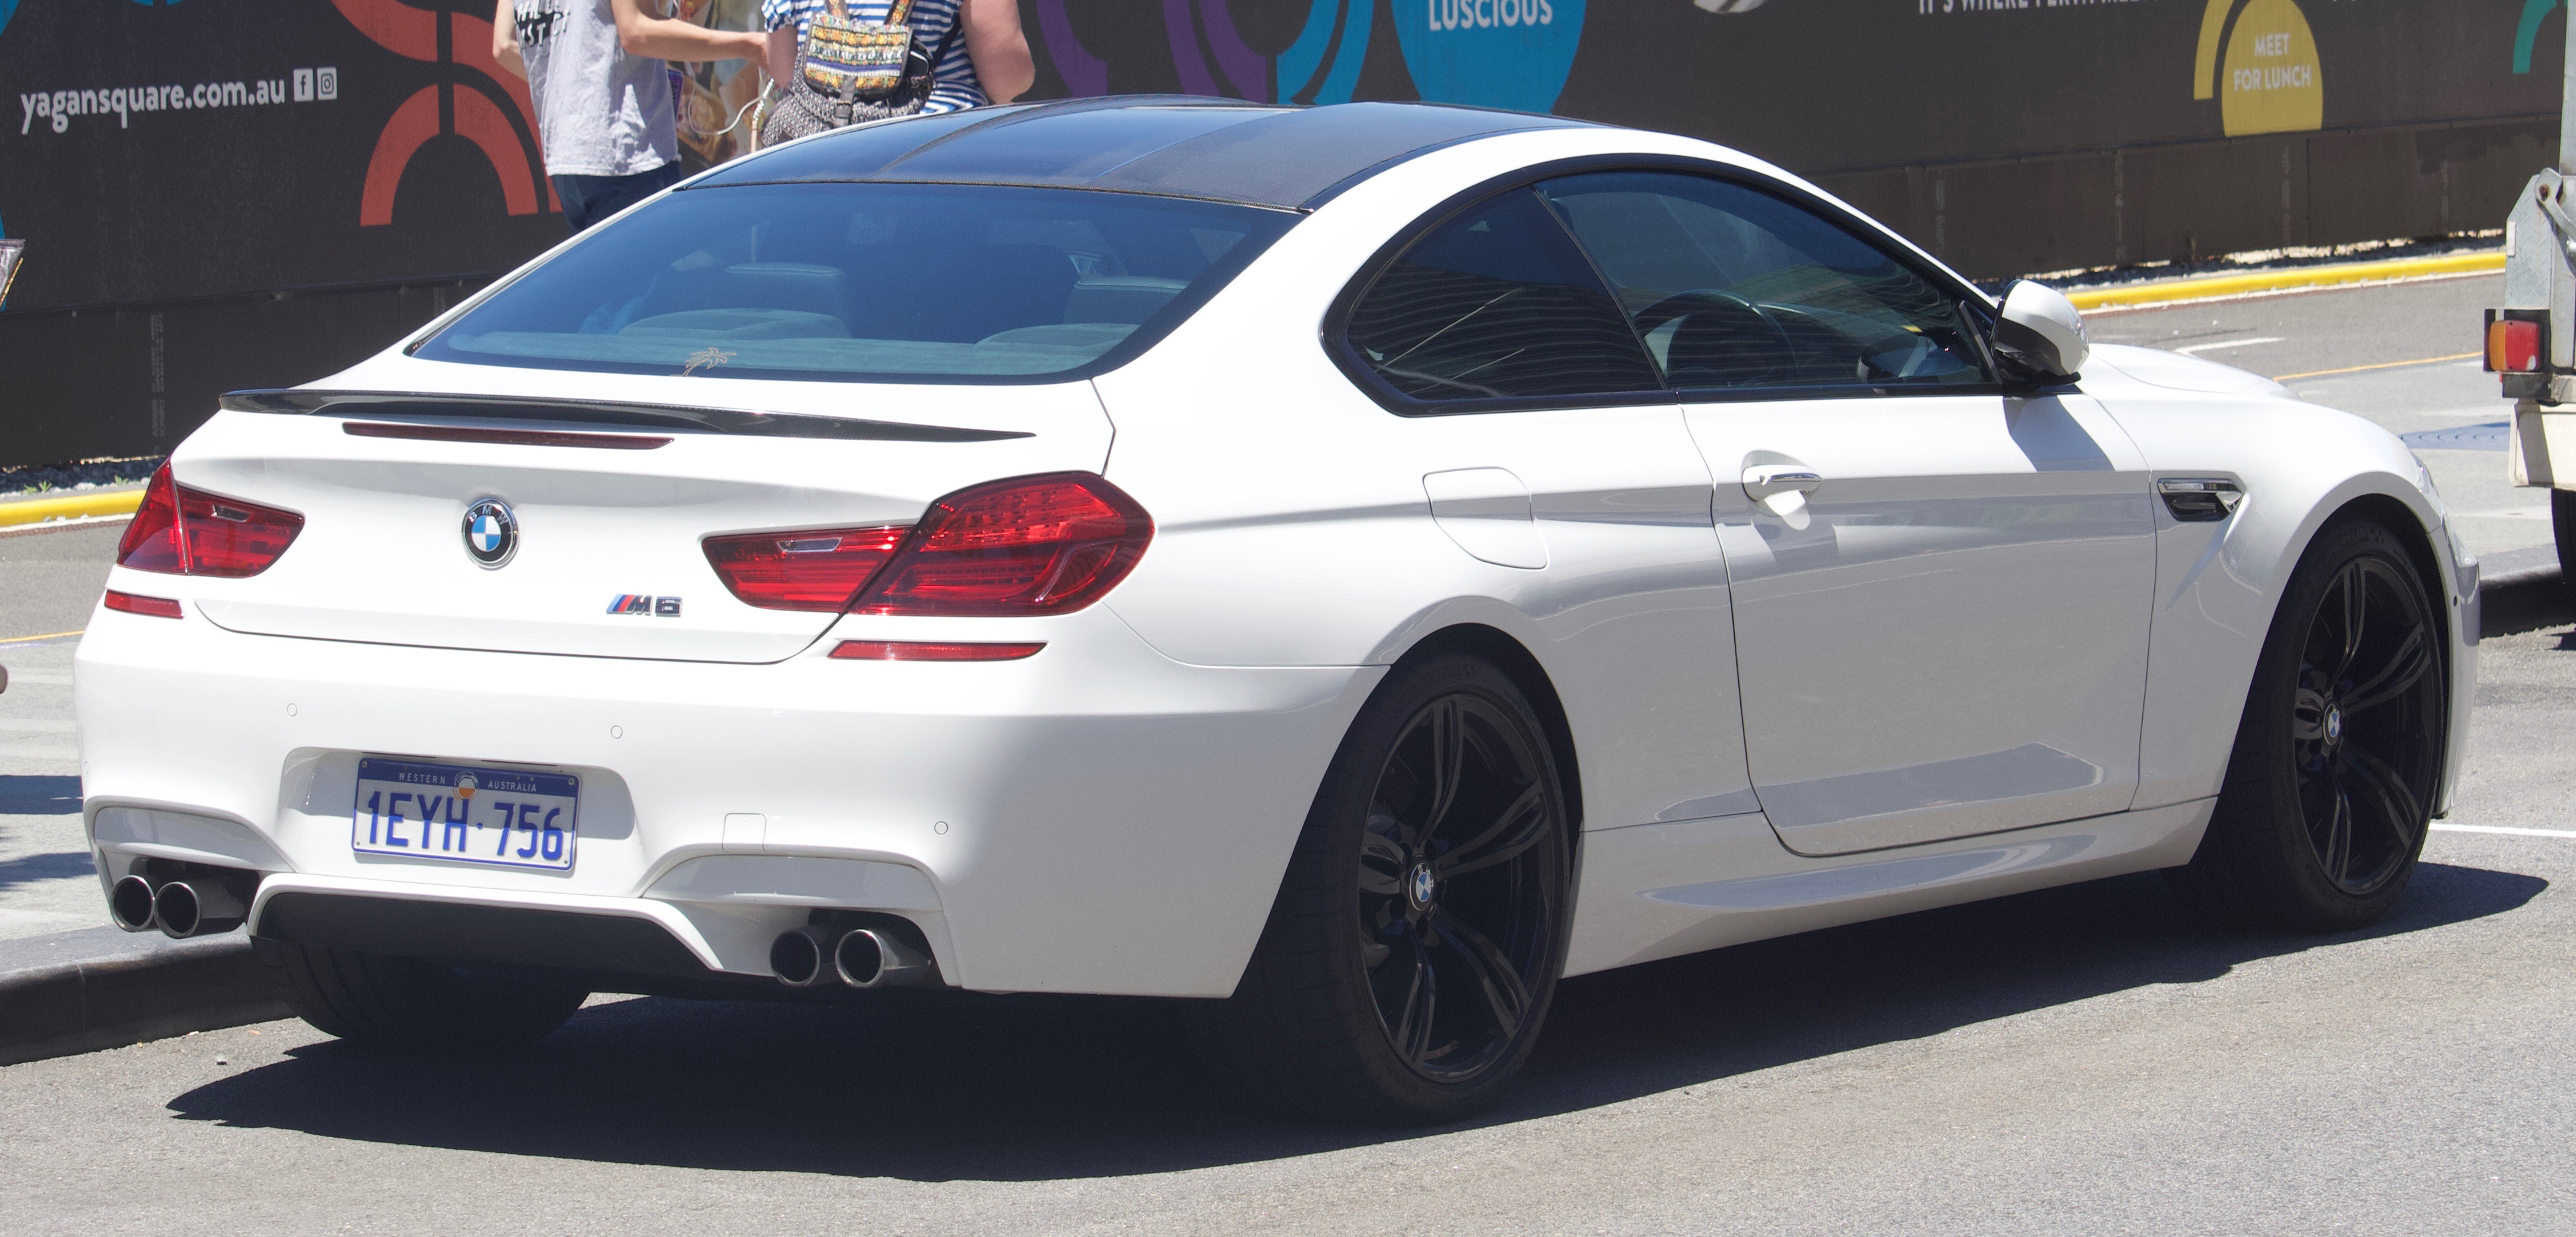 File 2012 Bmw M6 F13 Coupe 2018 11 27 02 Jpg Wikimedia Commons